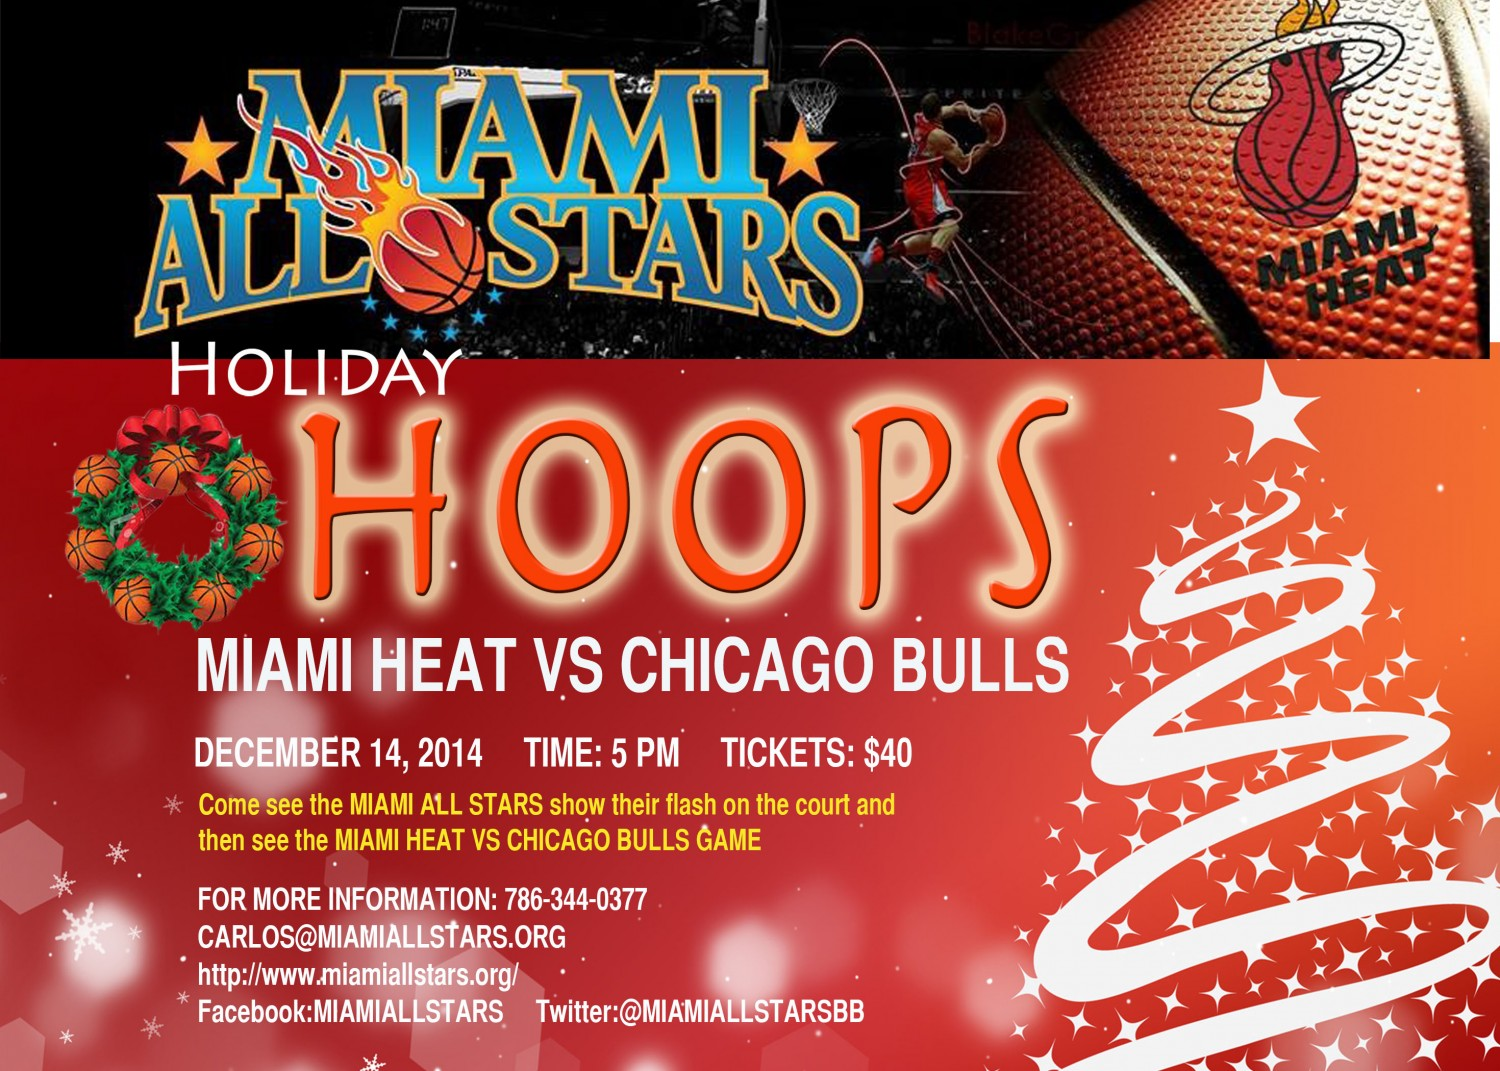 HOLIDAY HOOPS 3